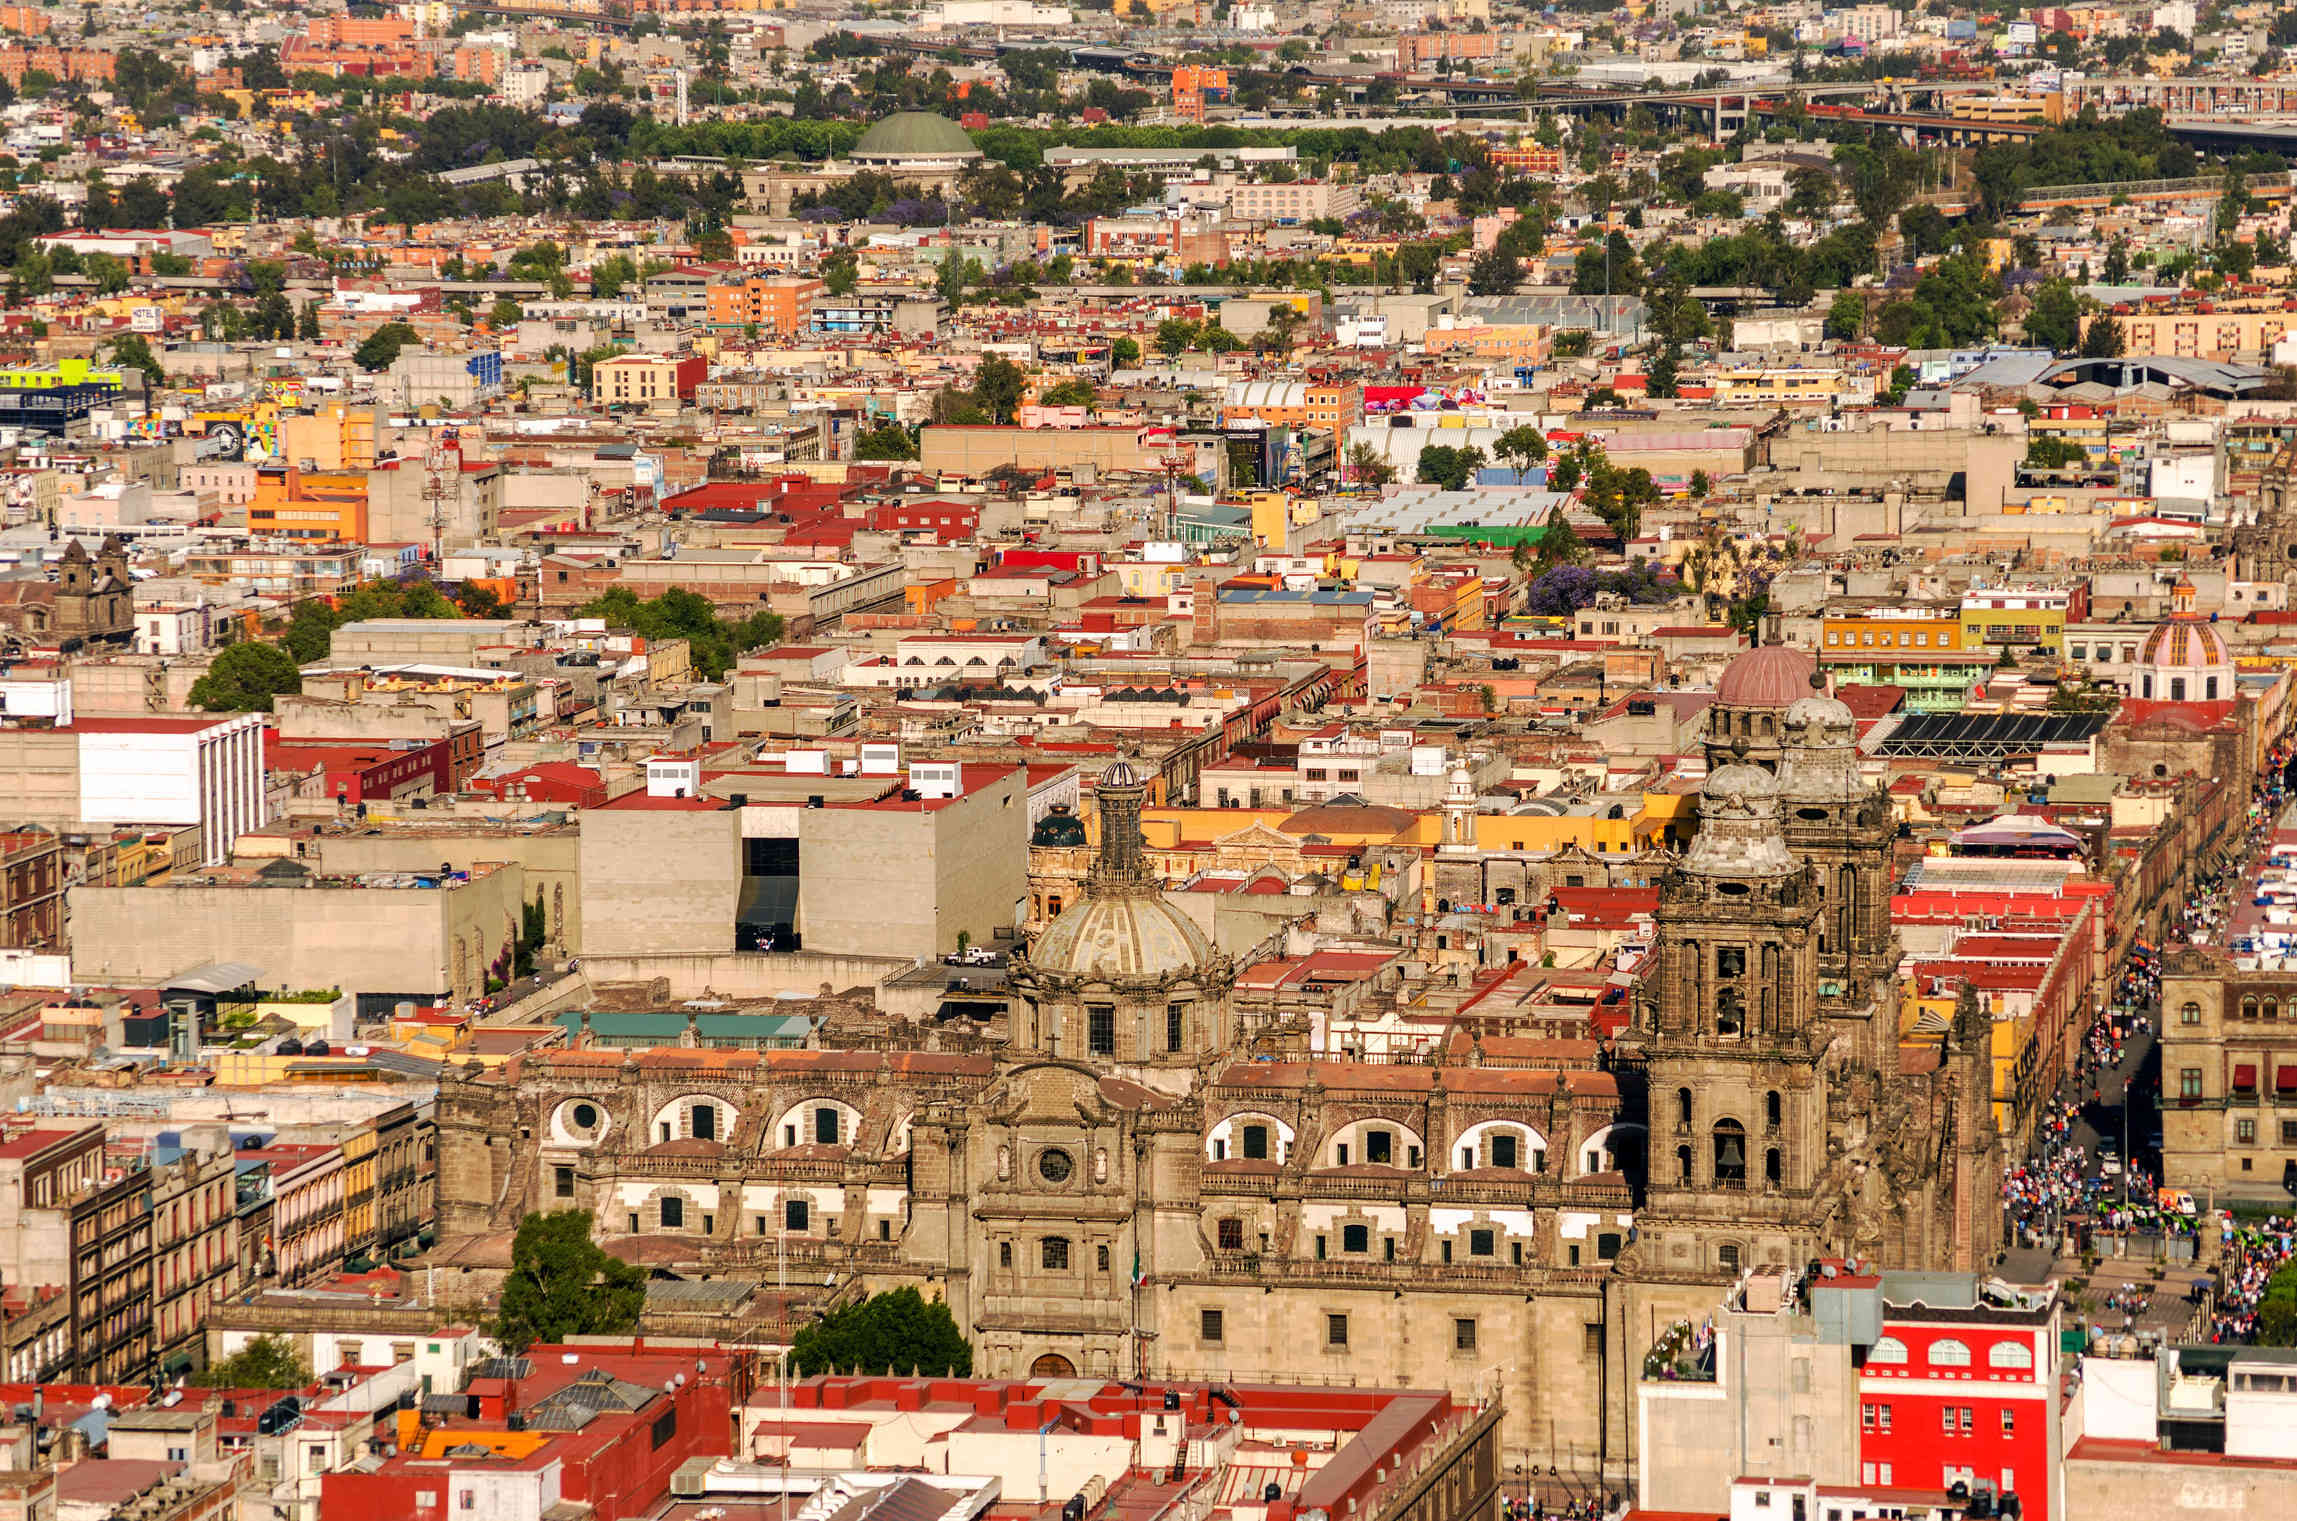 Metropolitan Cathedral and Zócalo